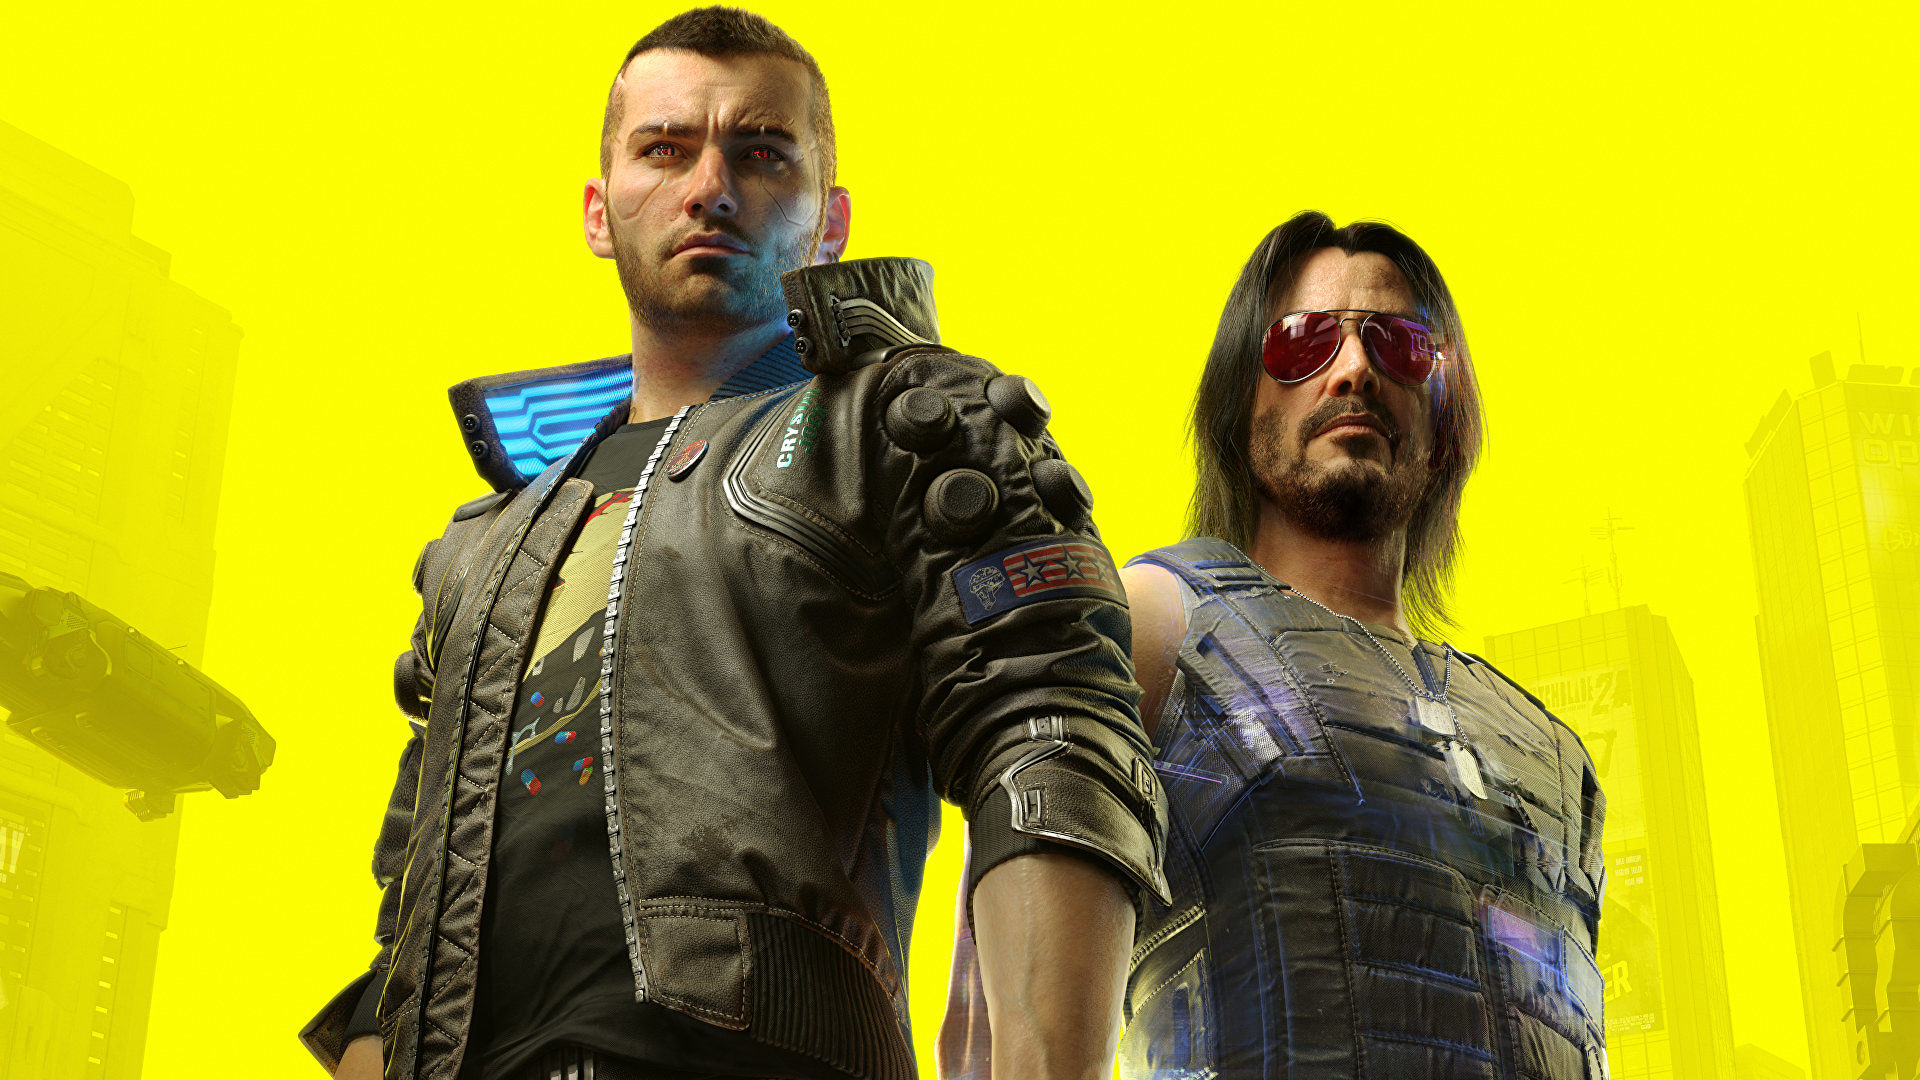 cyberpunk-2077-updates-will-keep-the-game-from-dying,-says-ceo